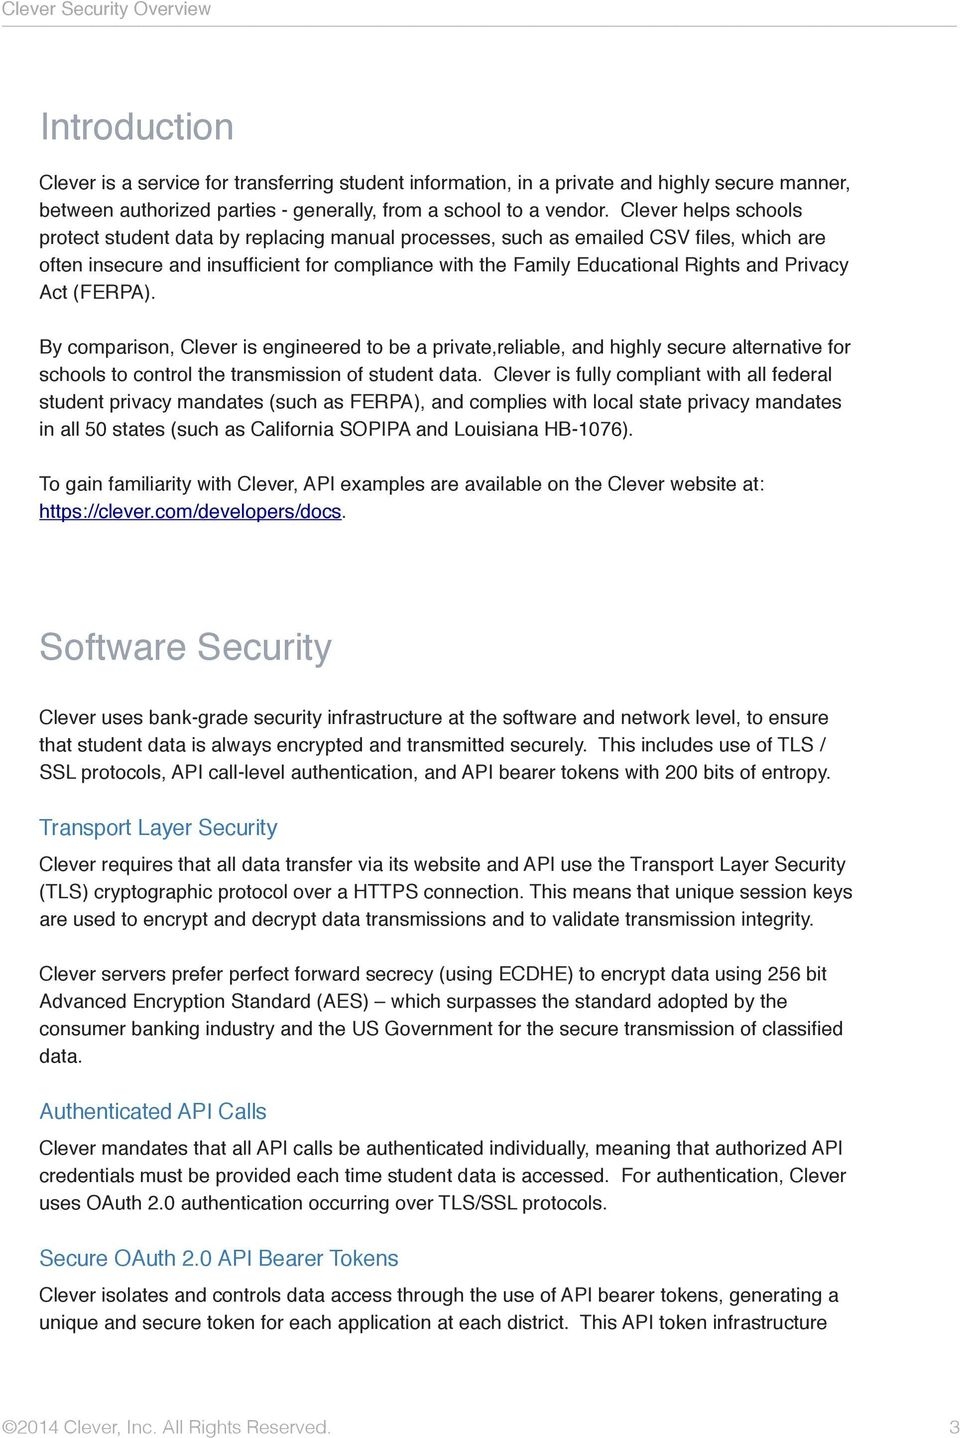 Clever Security Overview - PDF